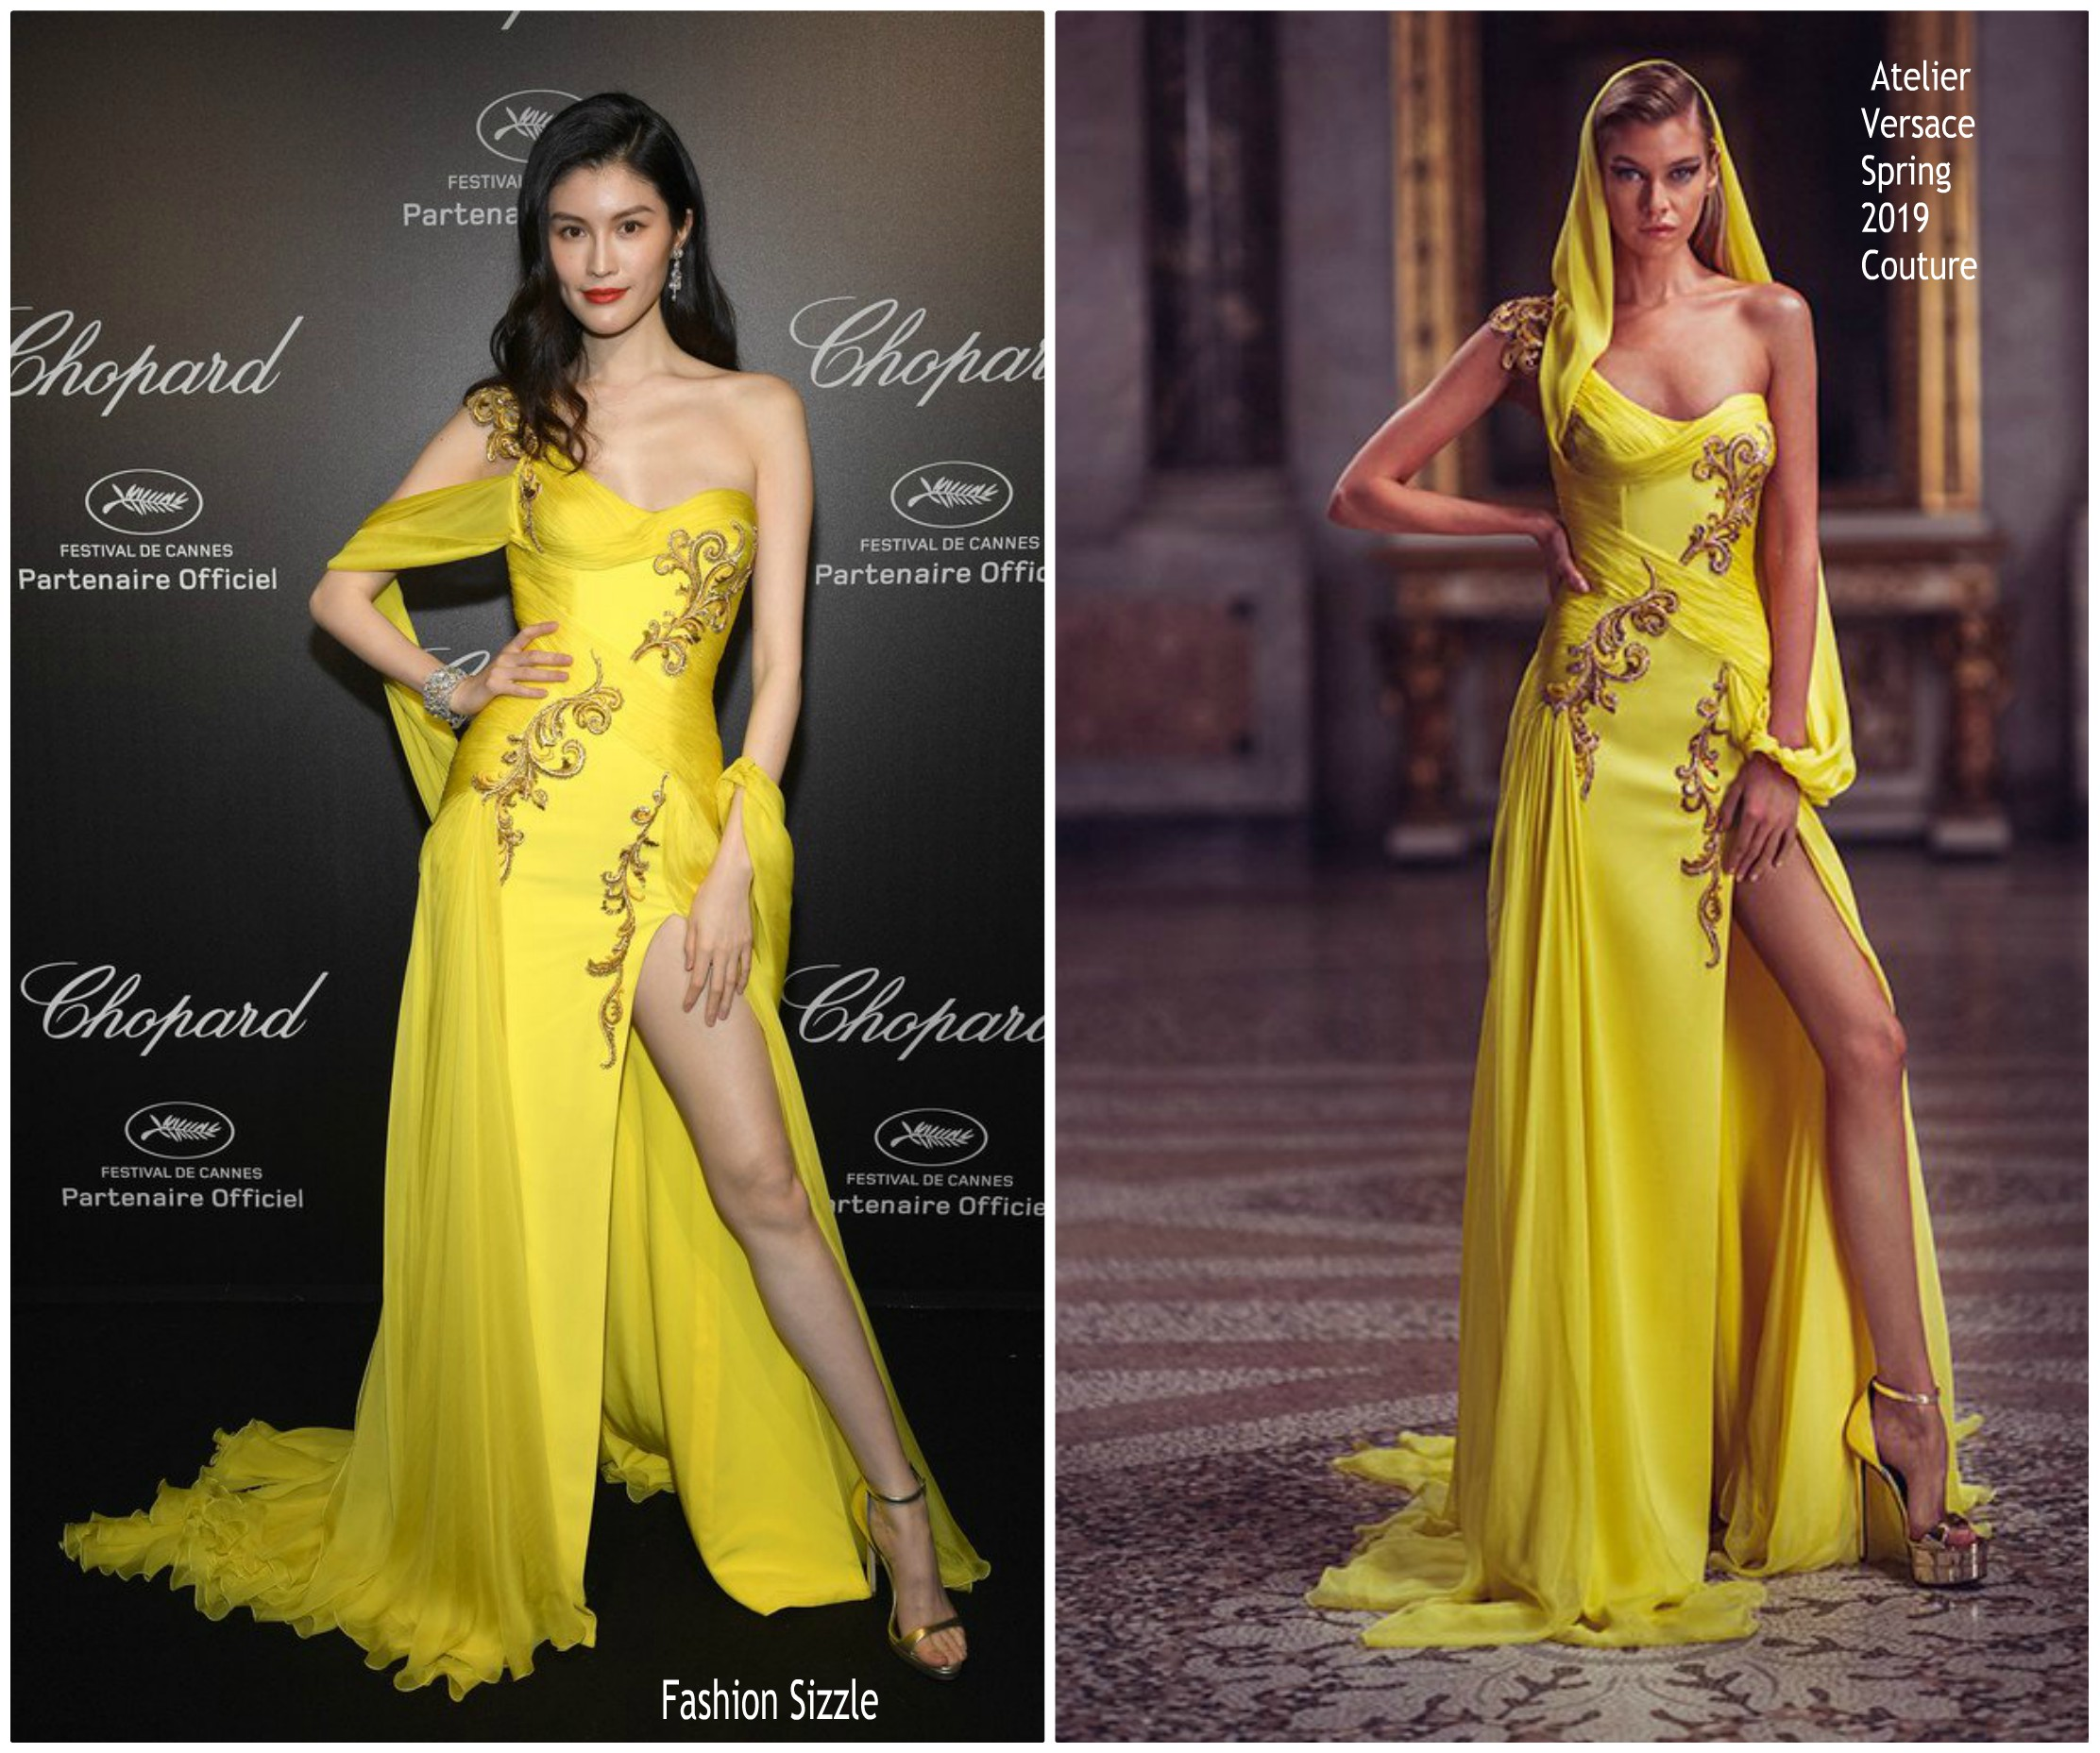 sui-he-in-atelier-versace-couture-love-night-chopard-gala-2019